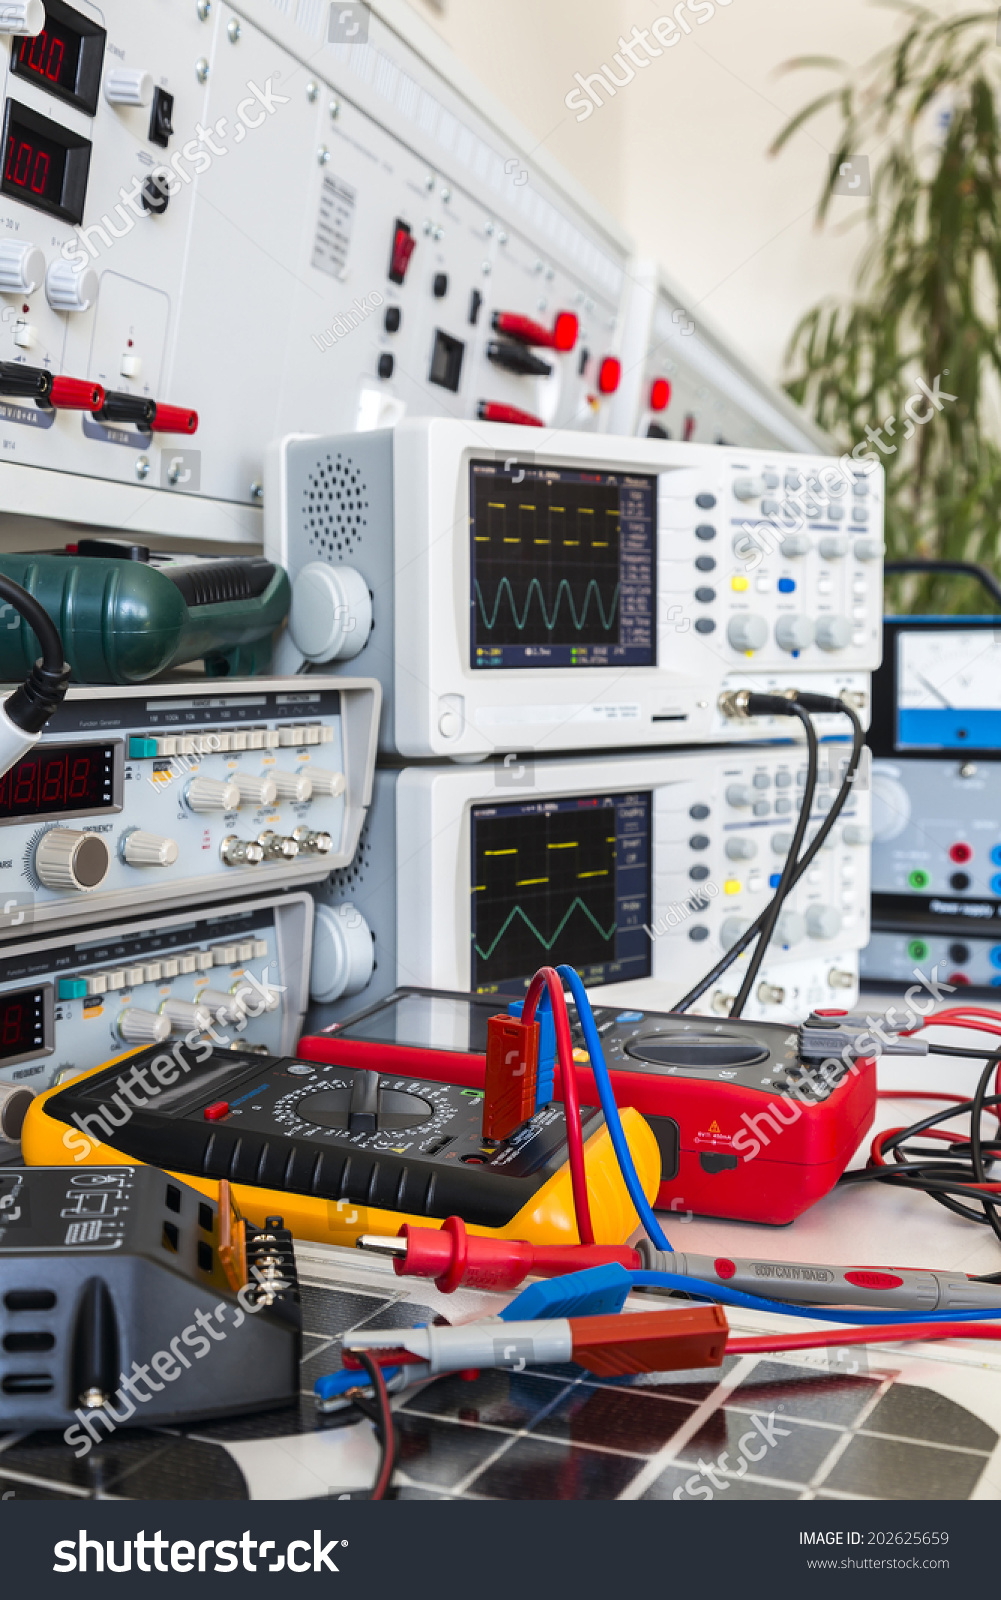 Faulty Solar Regulator Checking Using Oscilloscopes Stock Photo Electrical Wiring And An In Laboratory